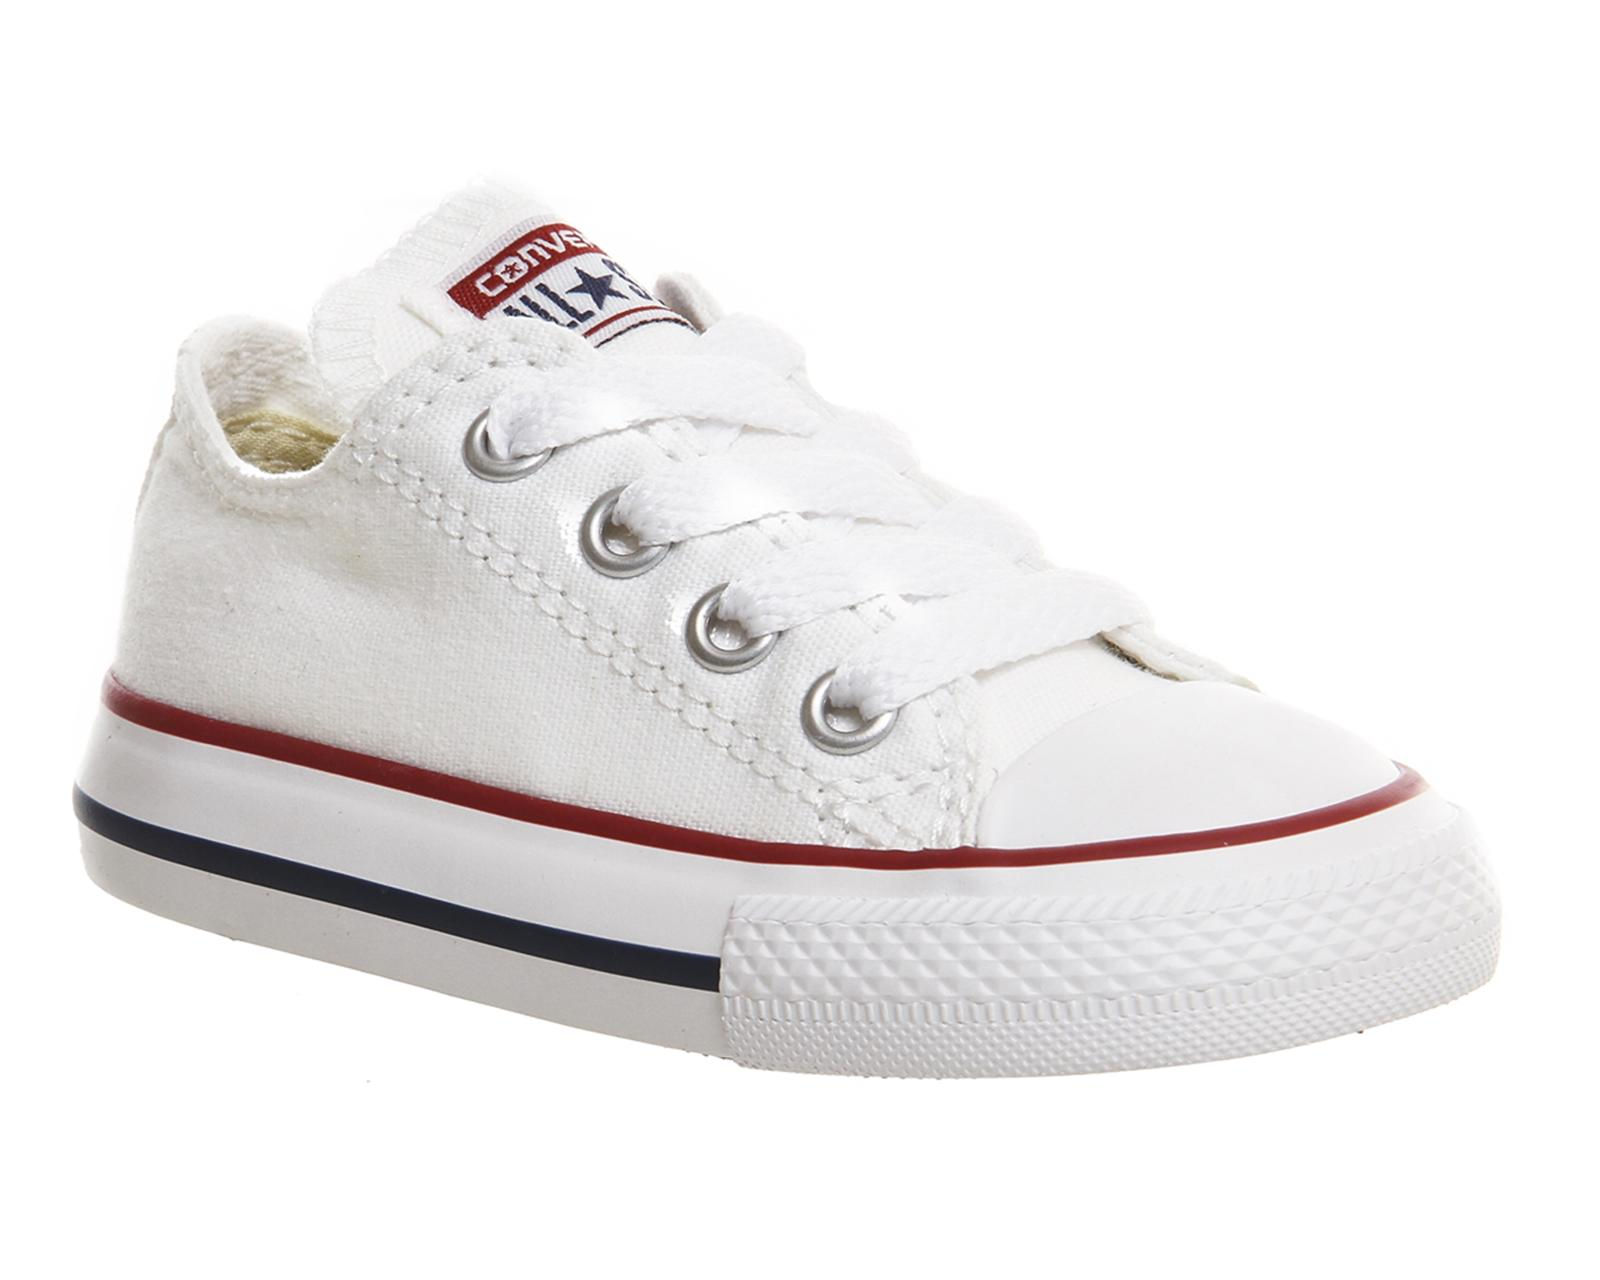 970dddee8dc5 Converse All Star Low Infant Shoes in White for Men - Lyst